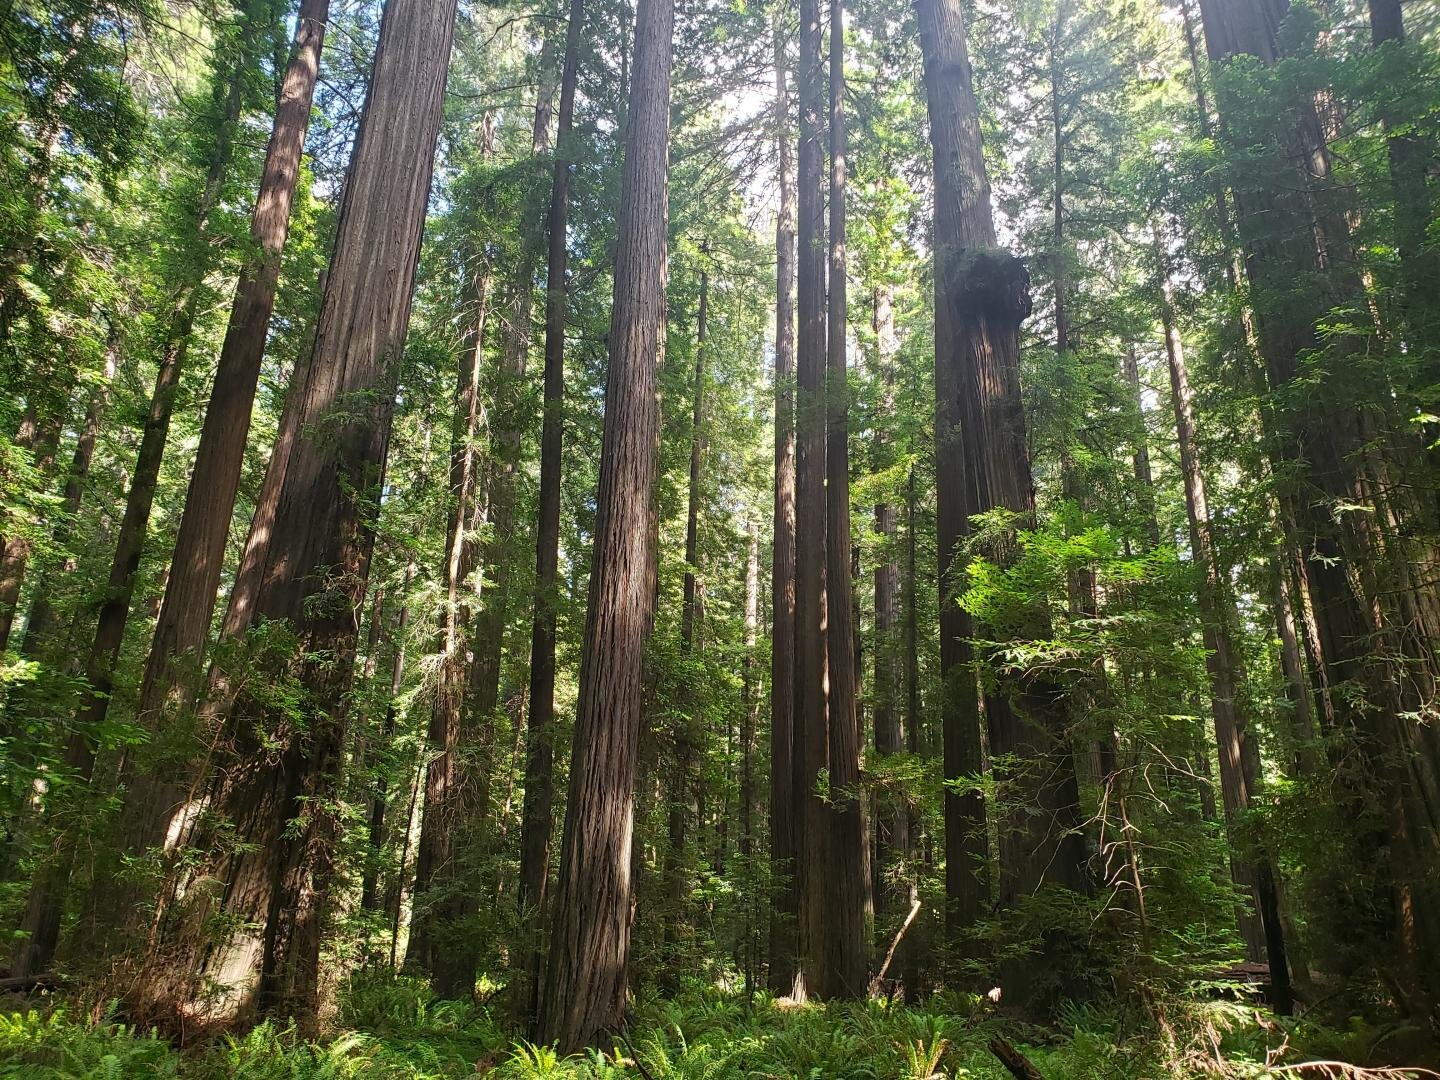 California's carbon mitigation efforts may be thwarted by climate